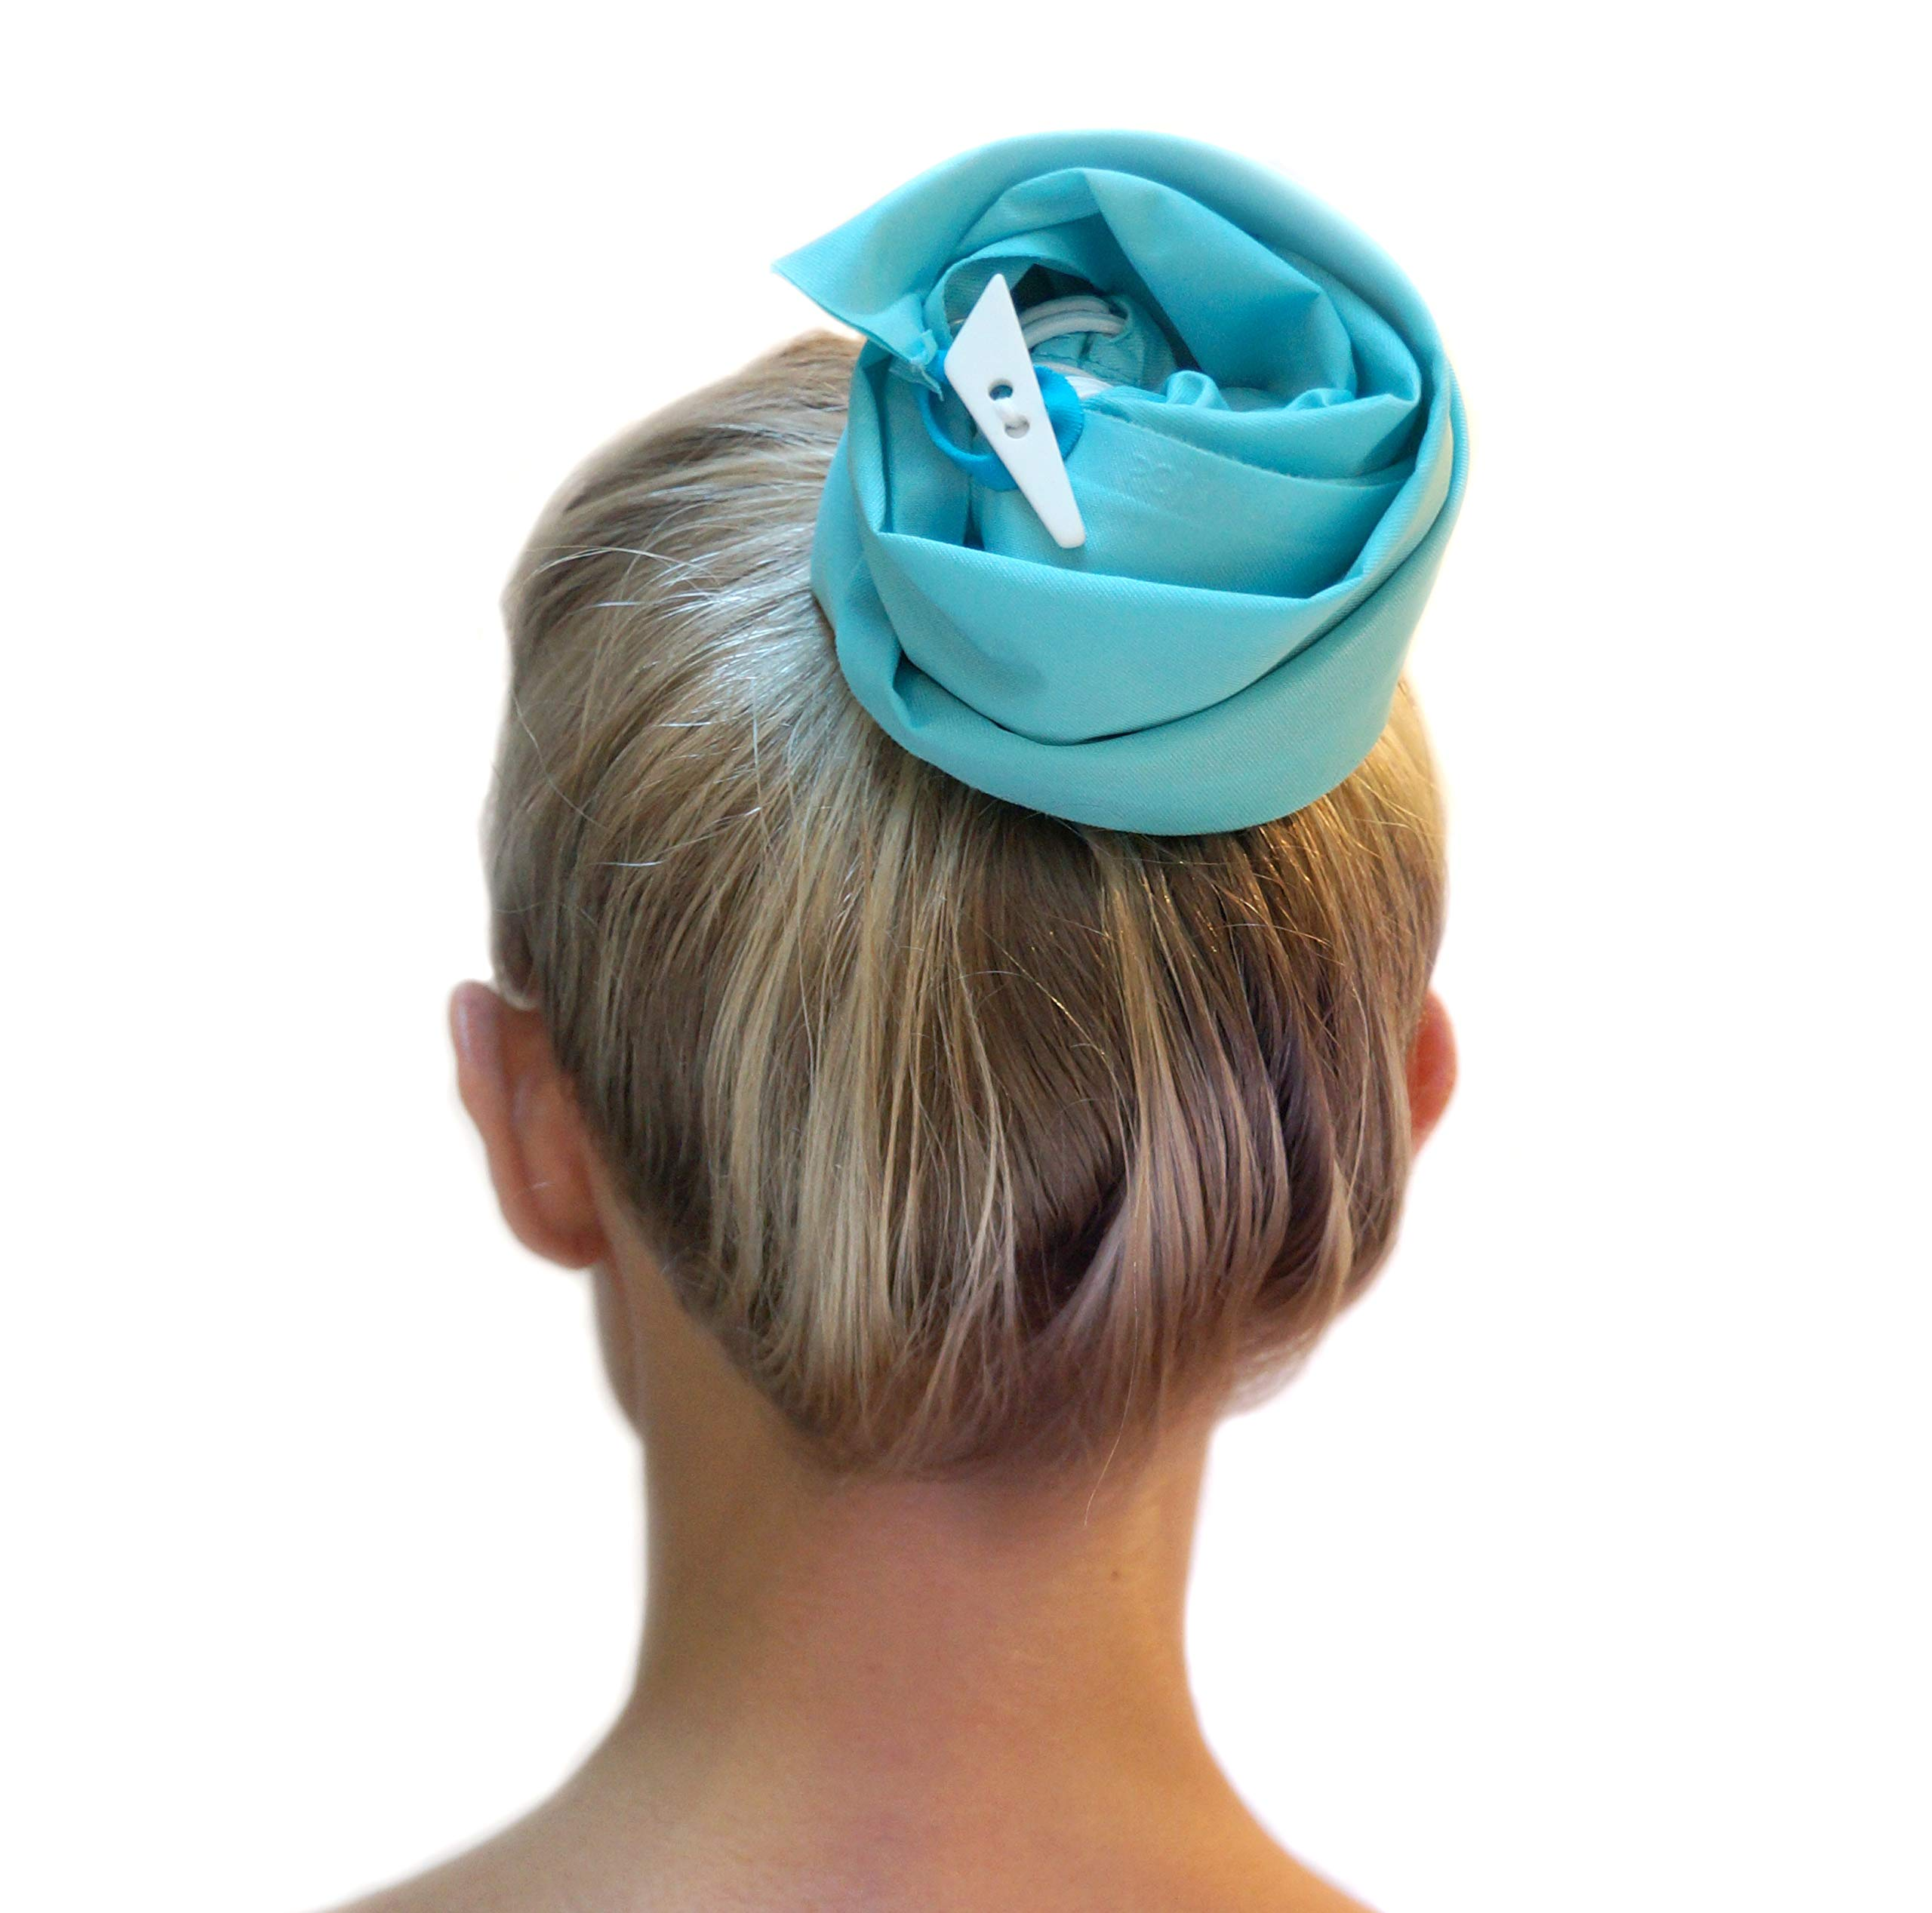 PONYDRY WATERPROOF HAIRSLEEVE IN TURQUOISE - Wash just the roots of your hair while keeping your lengths dry. Perfect for the Shower, Gym, Pool and Beach